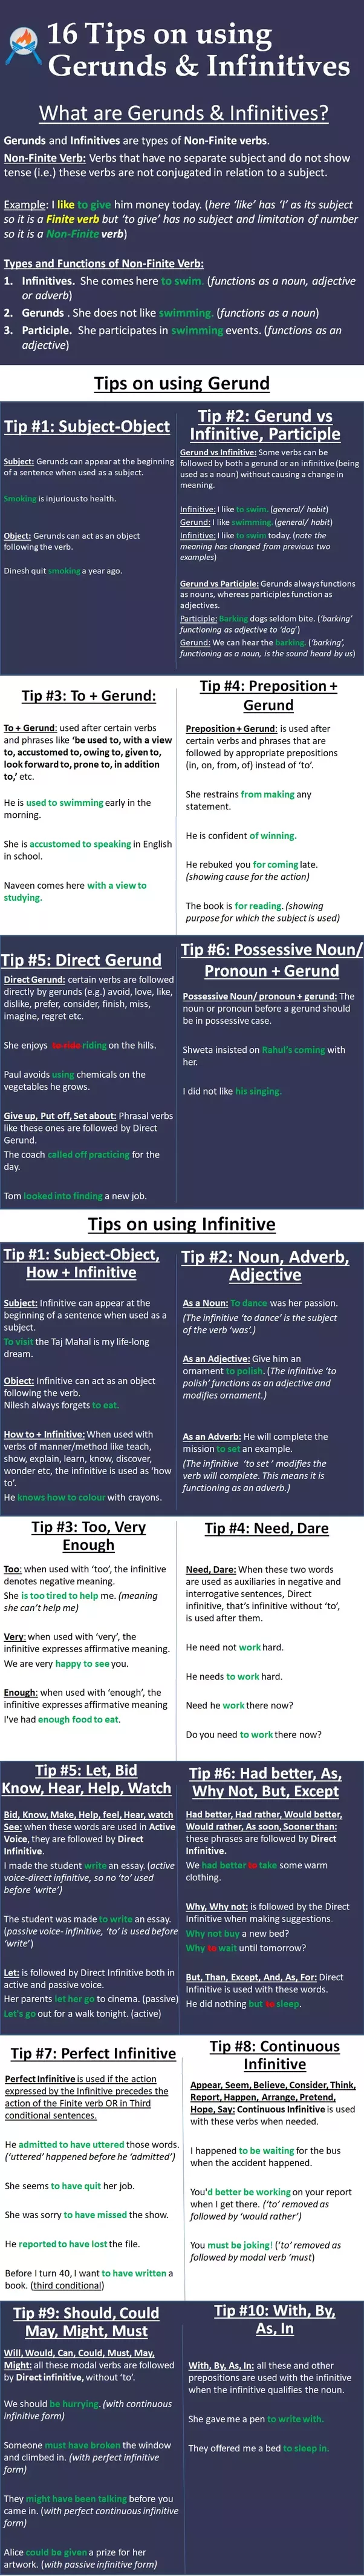 Where Can We Use Both Infinitives And Gerunds Quora